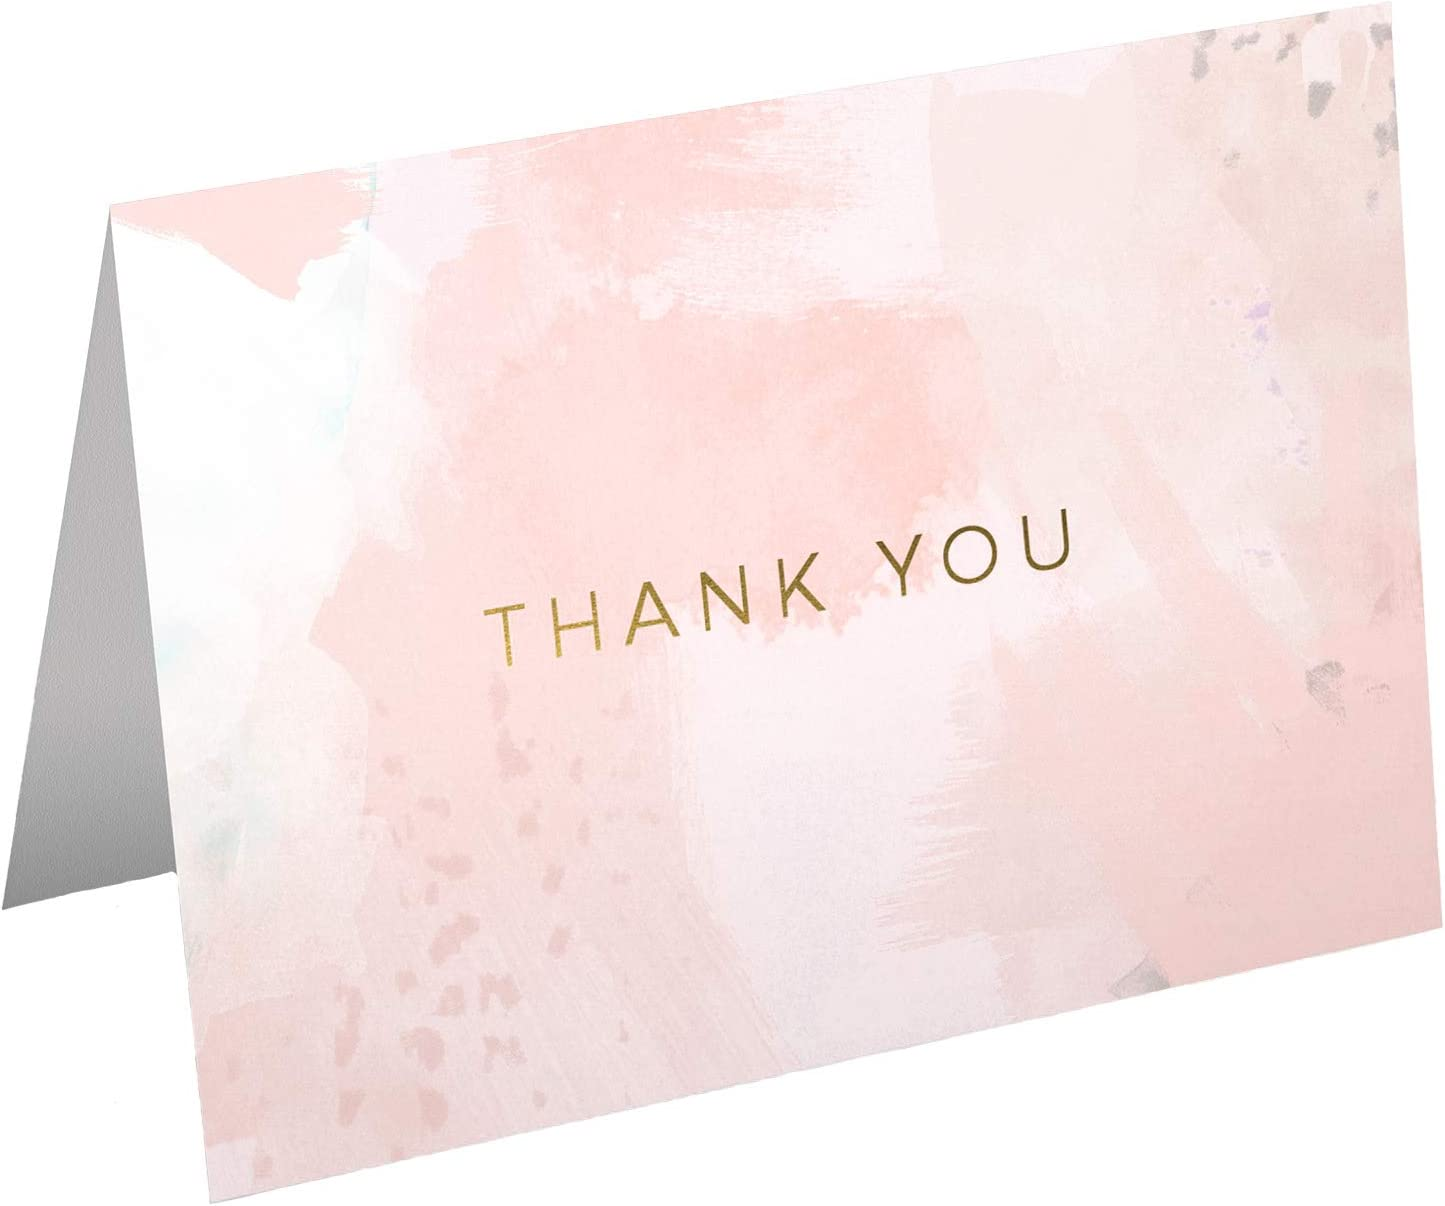 30 Water Color Soft Coral Pink with Gold Foil Thank You Cards - includes white envelopes and card box - perfect for weddings, graduation, birthdays, baby showers, business, engagements - blank inside